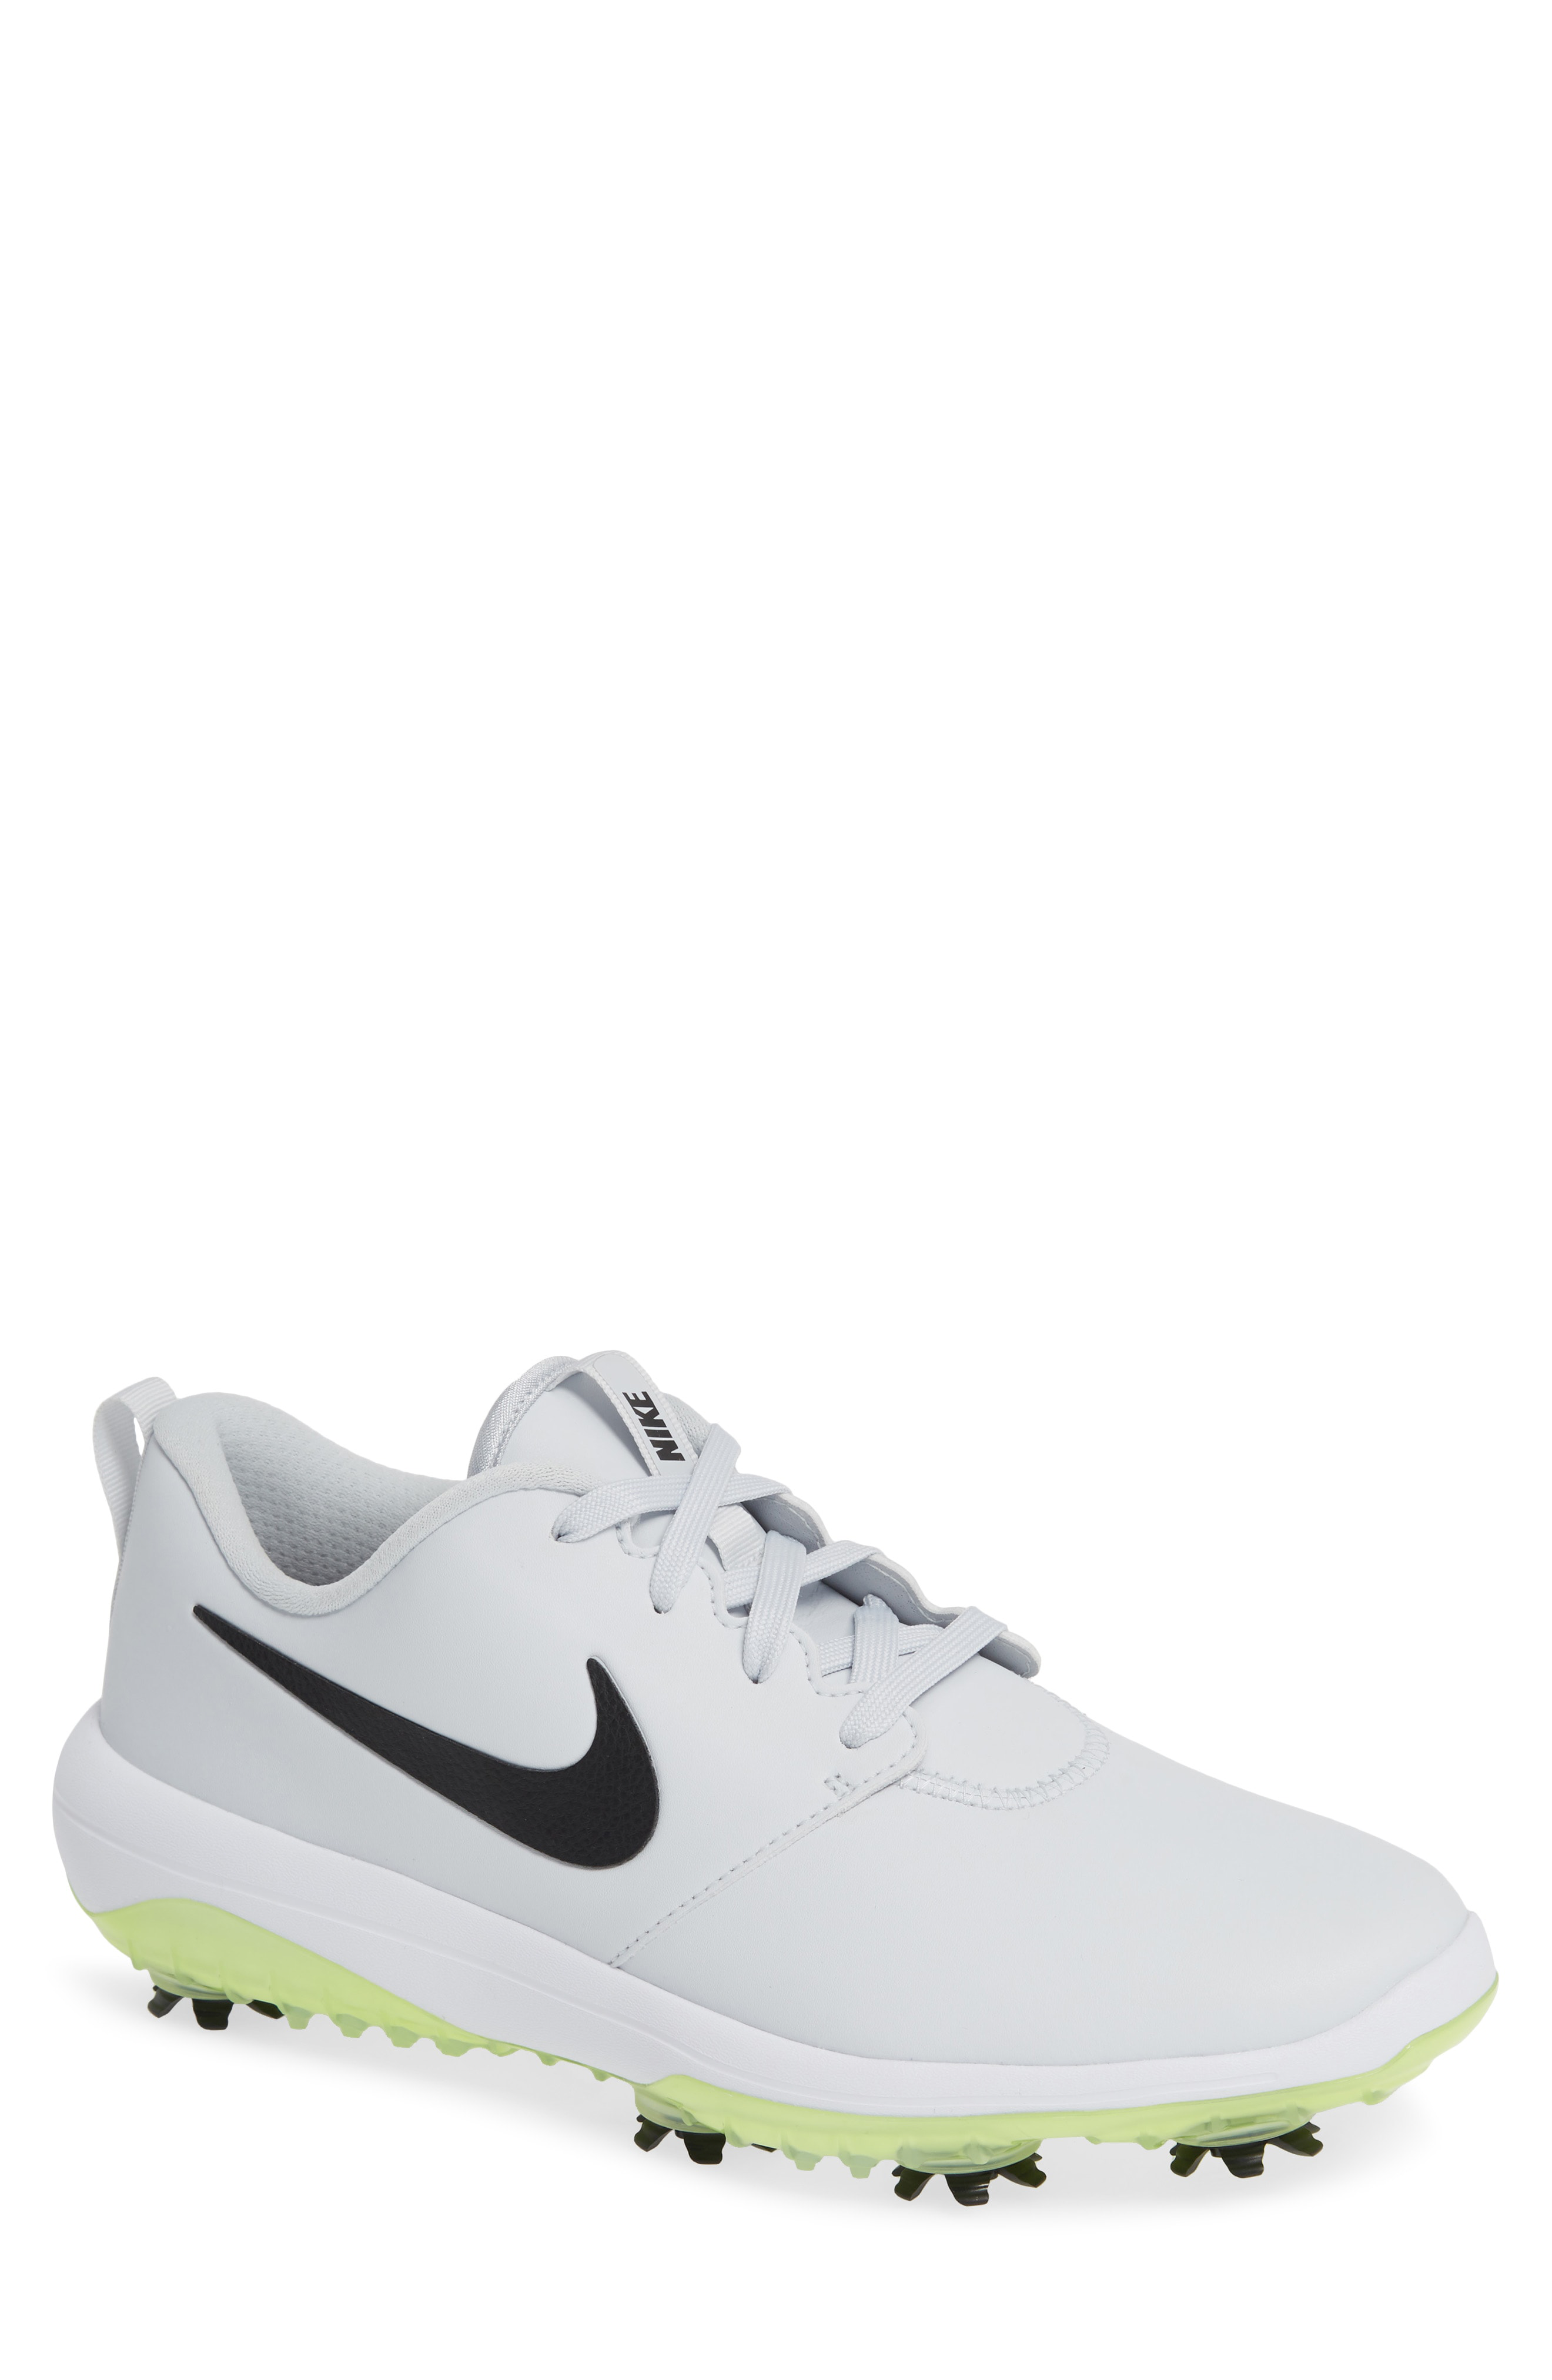 4d804298cac Nike Roshe G Tour Golf Shoe In Pure Platinum  Black  White